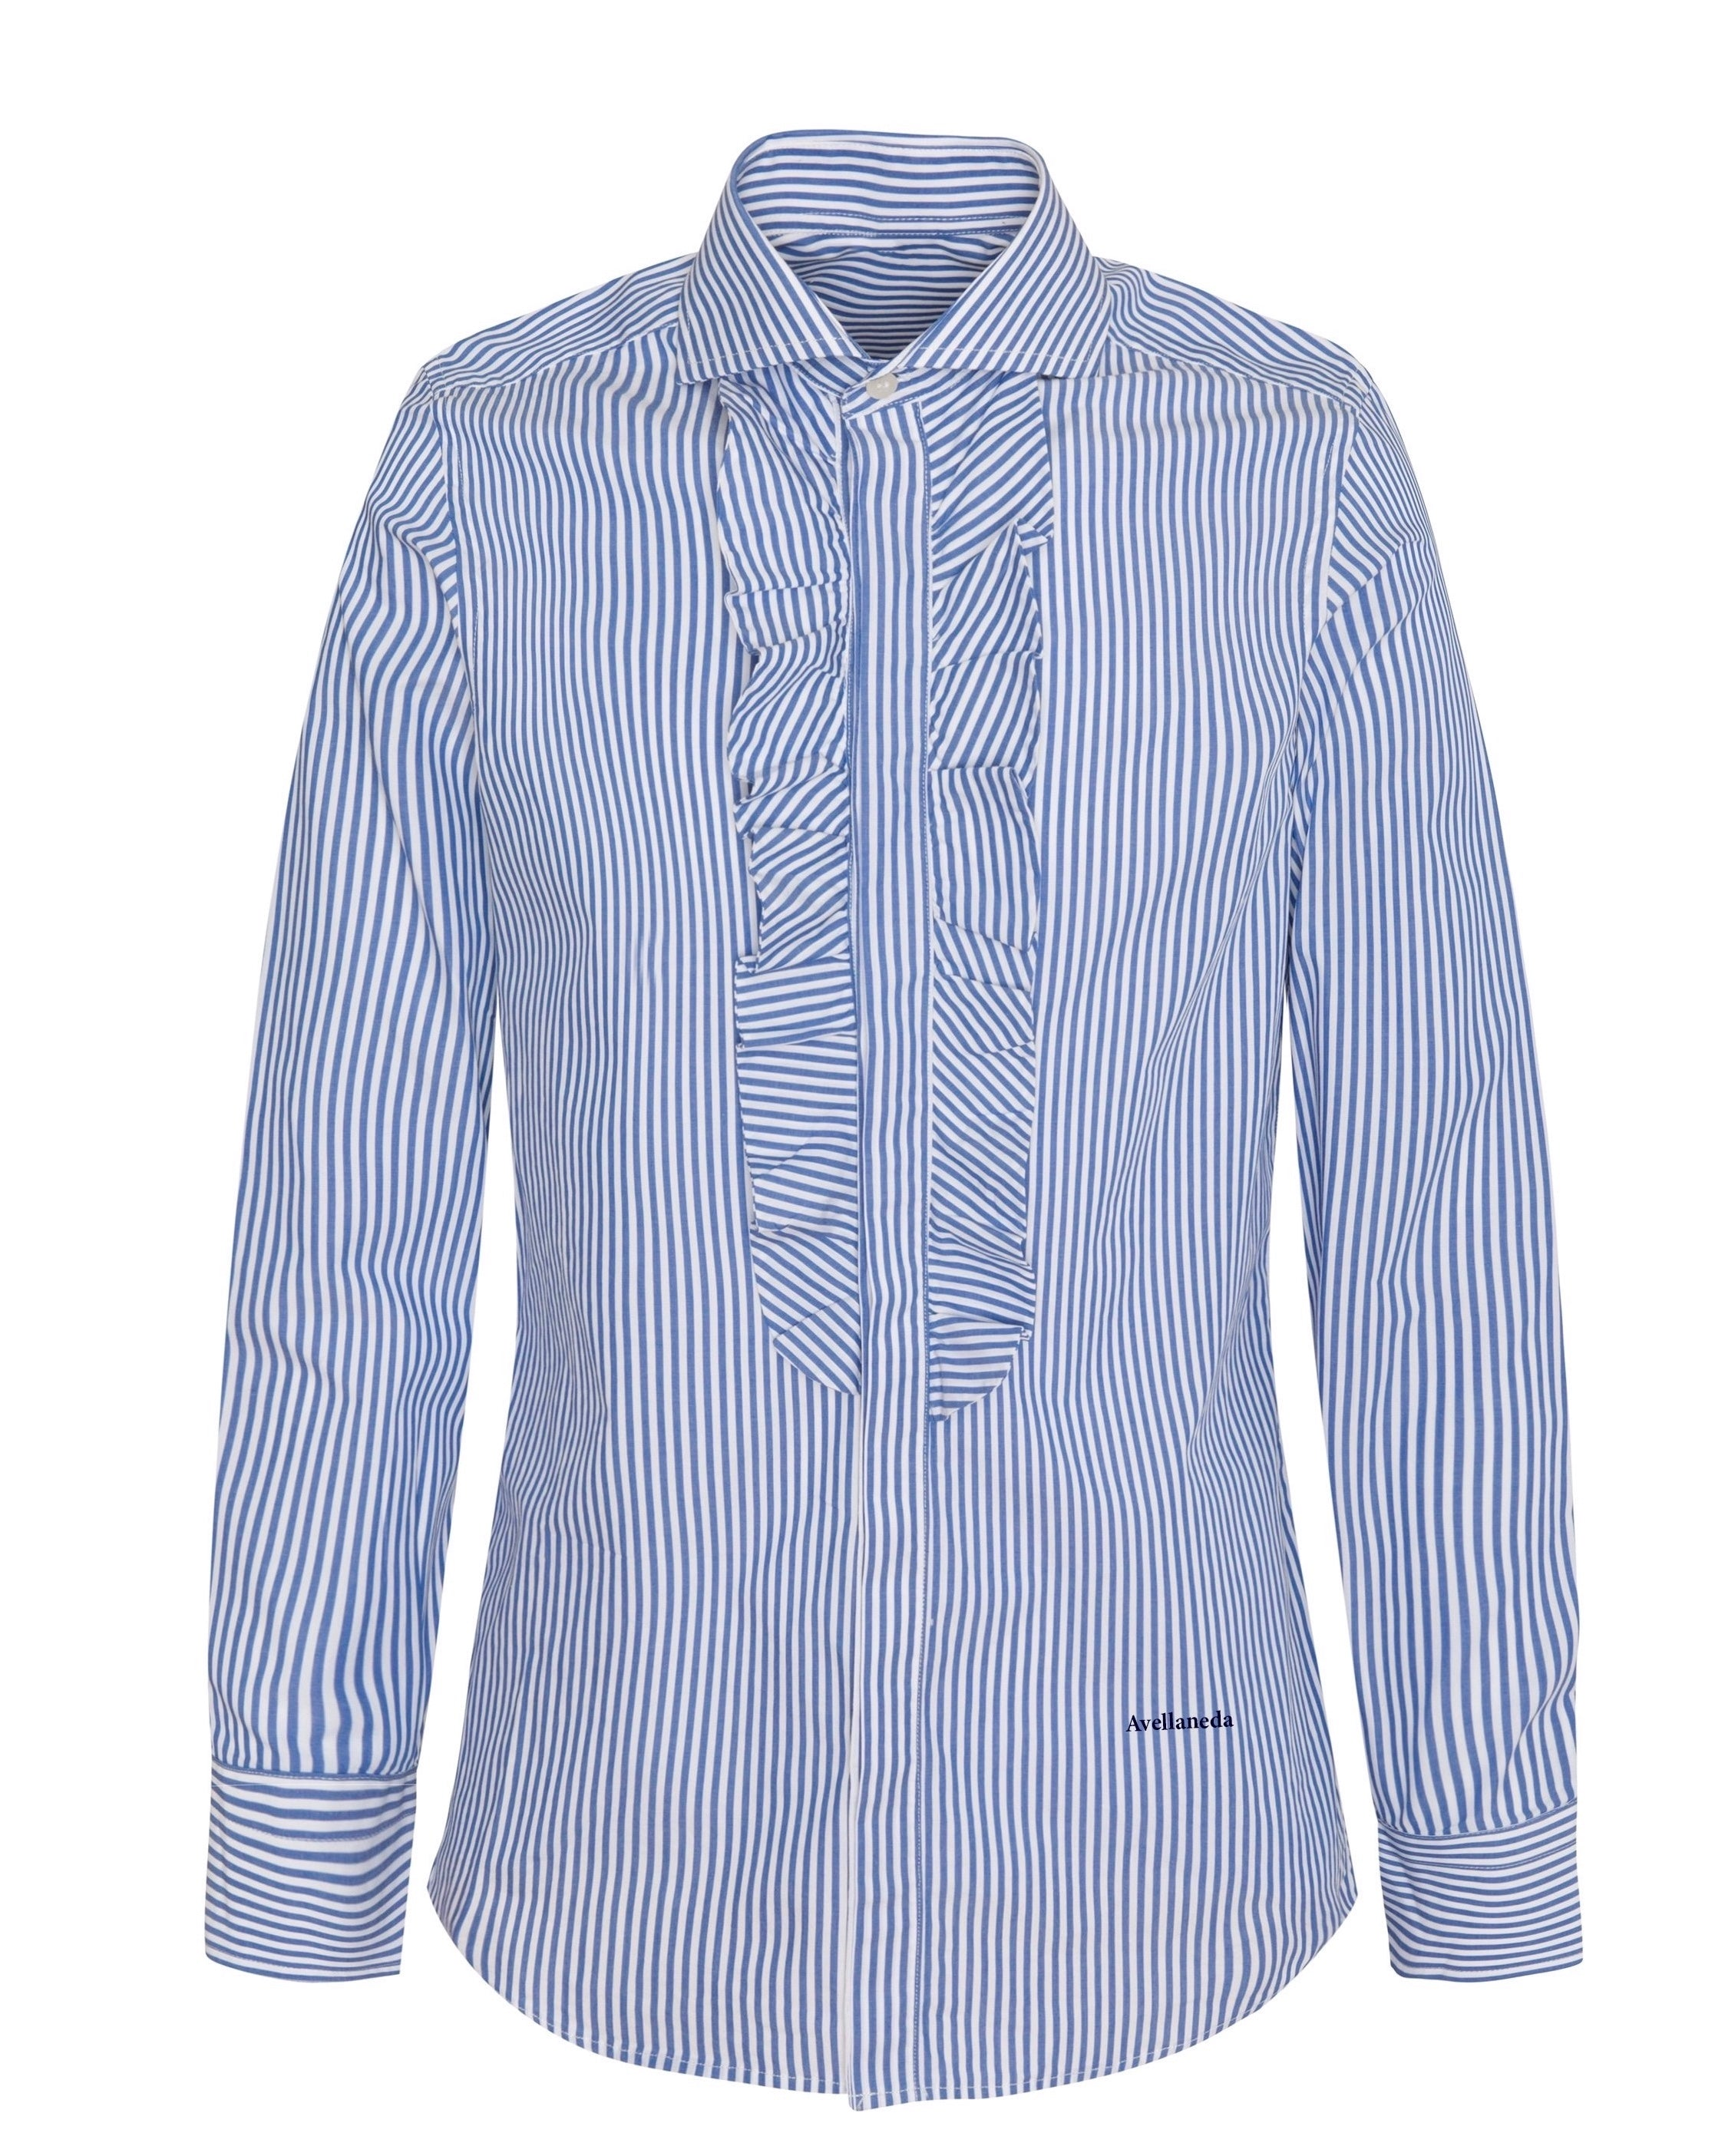 MEN'S RUFFLED BLUE SHIRT